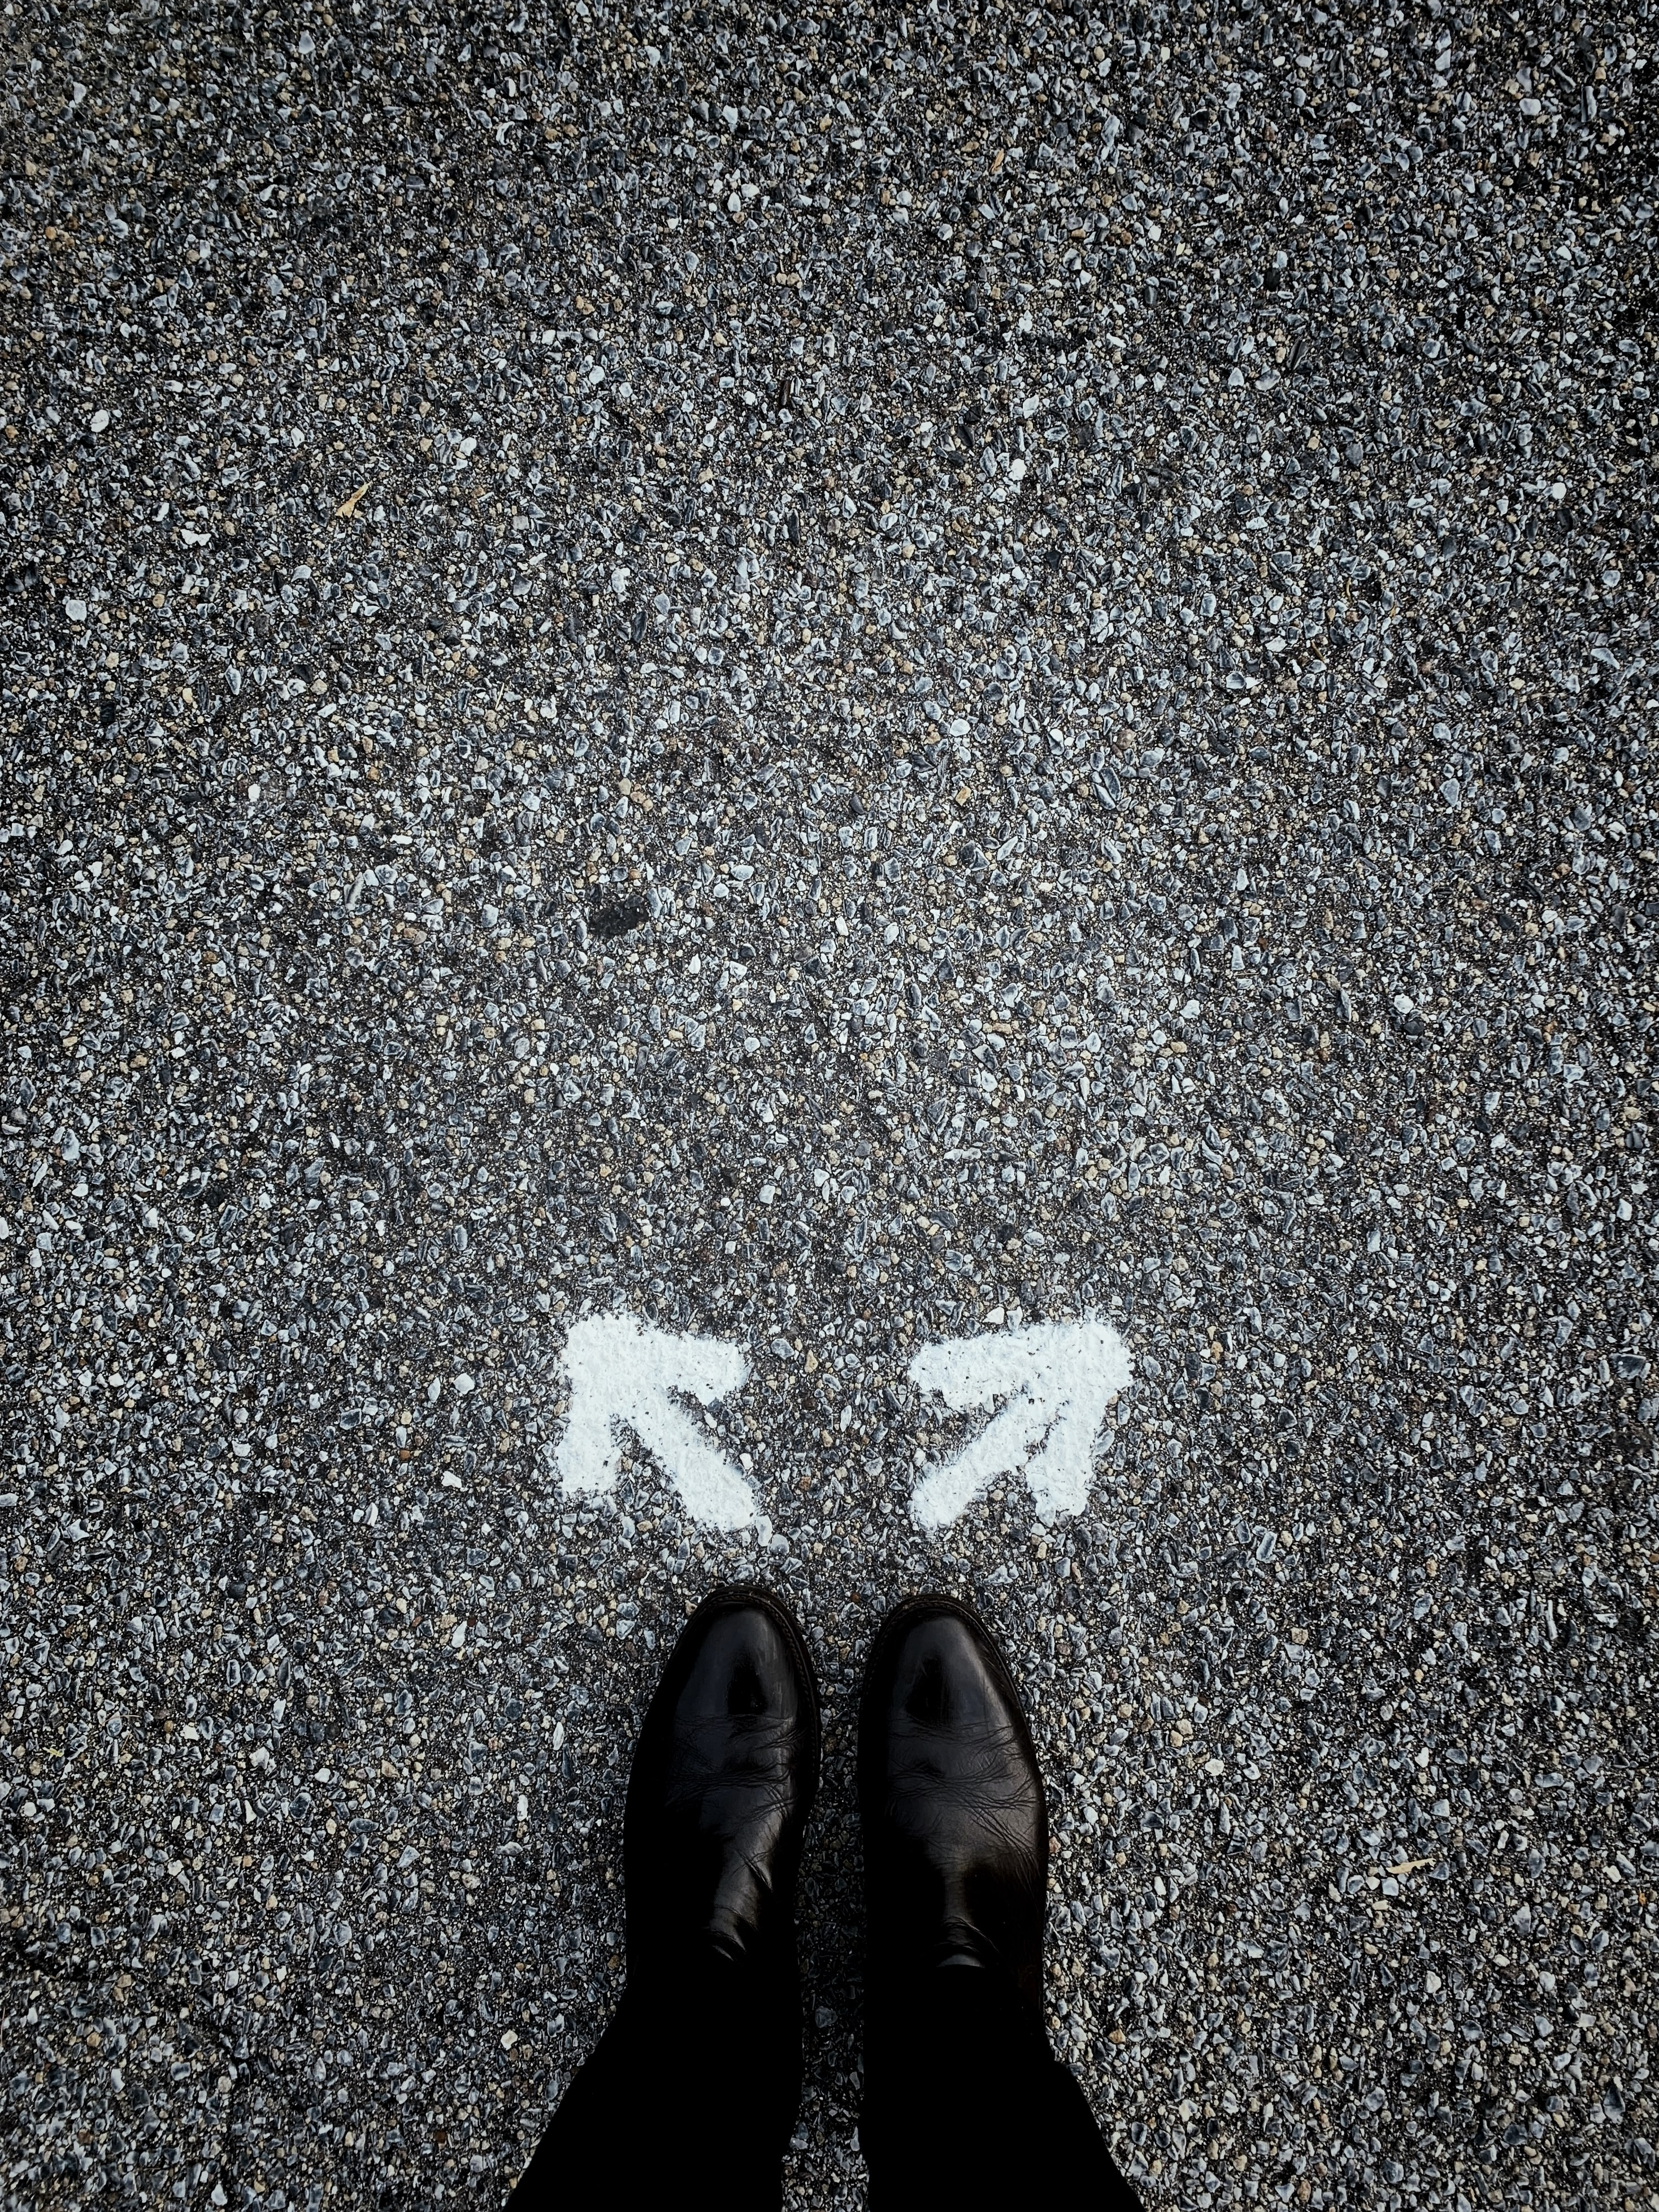 Person standing on concrete with arrows pointing in opposite directions